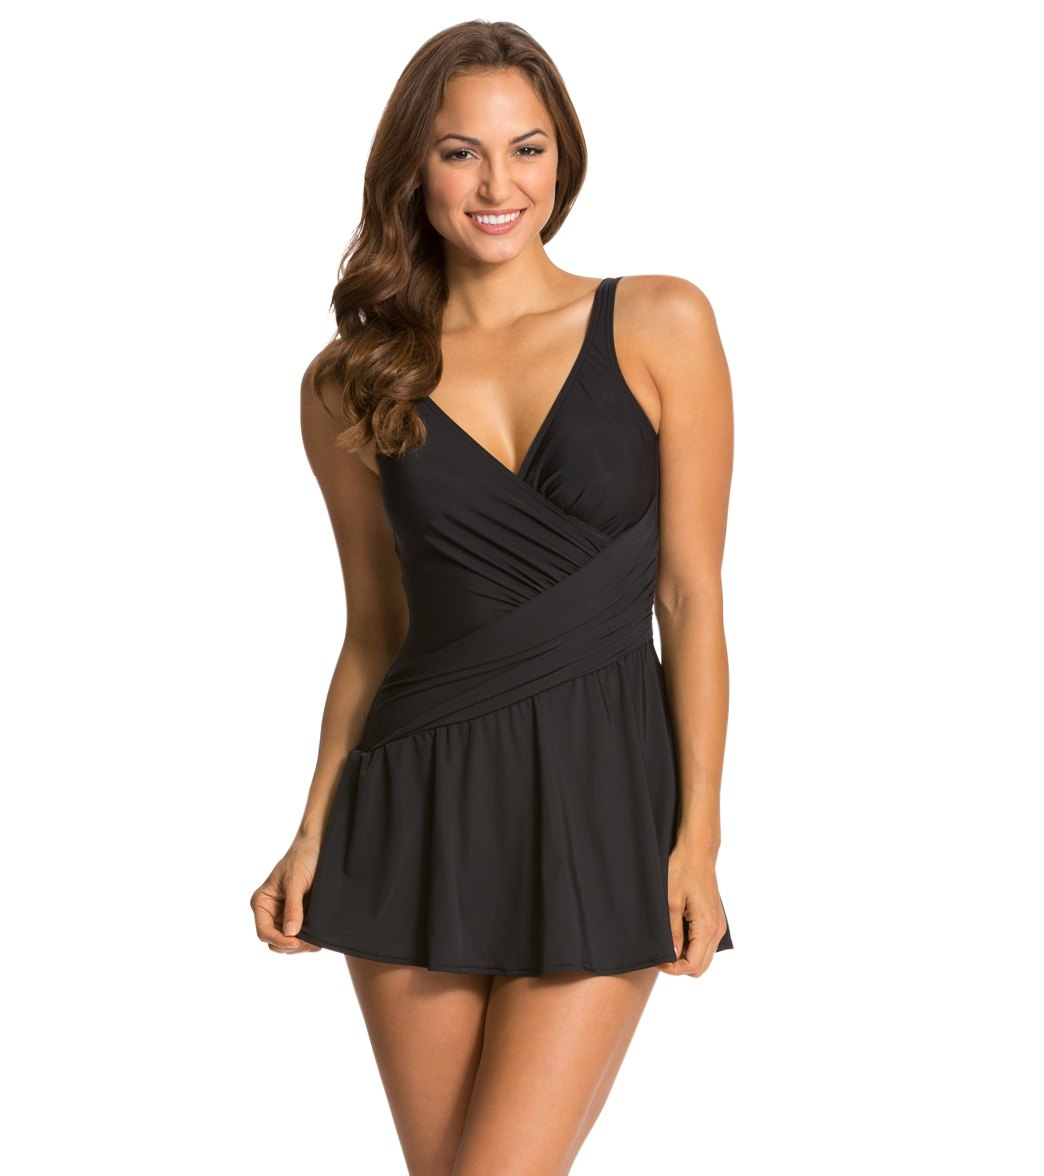 d55e293f598b3 ... Miraclesuit Solid Aurora Swimdress. Play Video. MODEL MEASUREMENTS